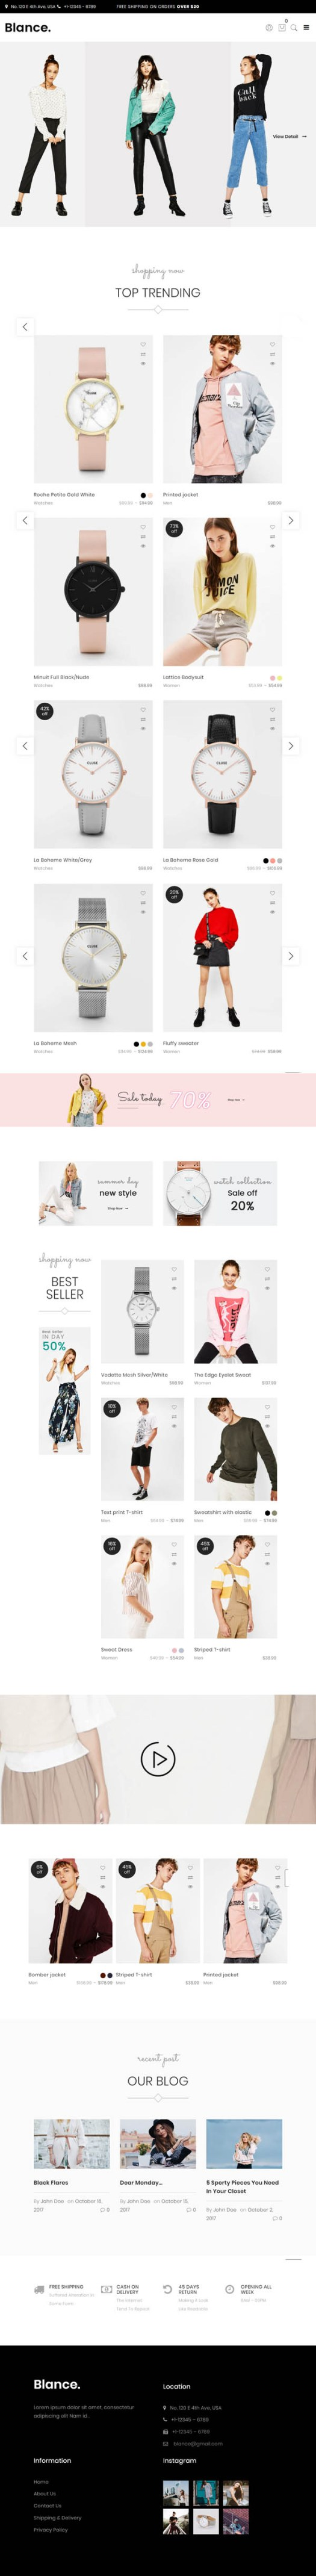 Blance : Clean, Minimal WooCommerce WordPress Theme